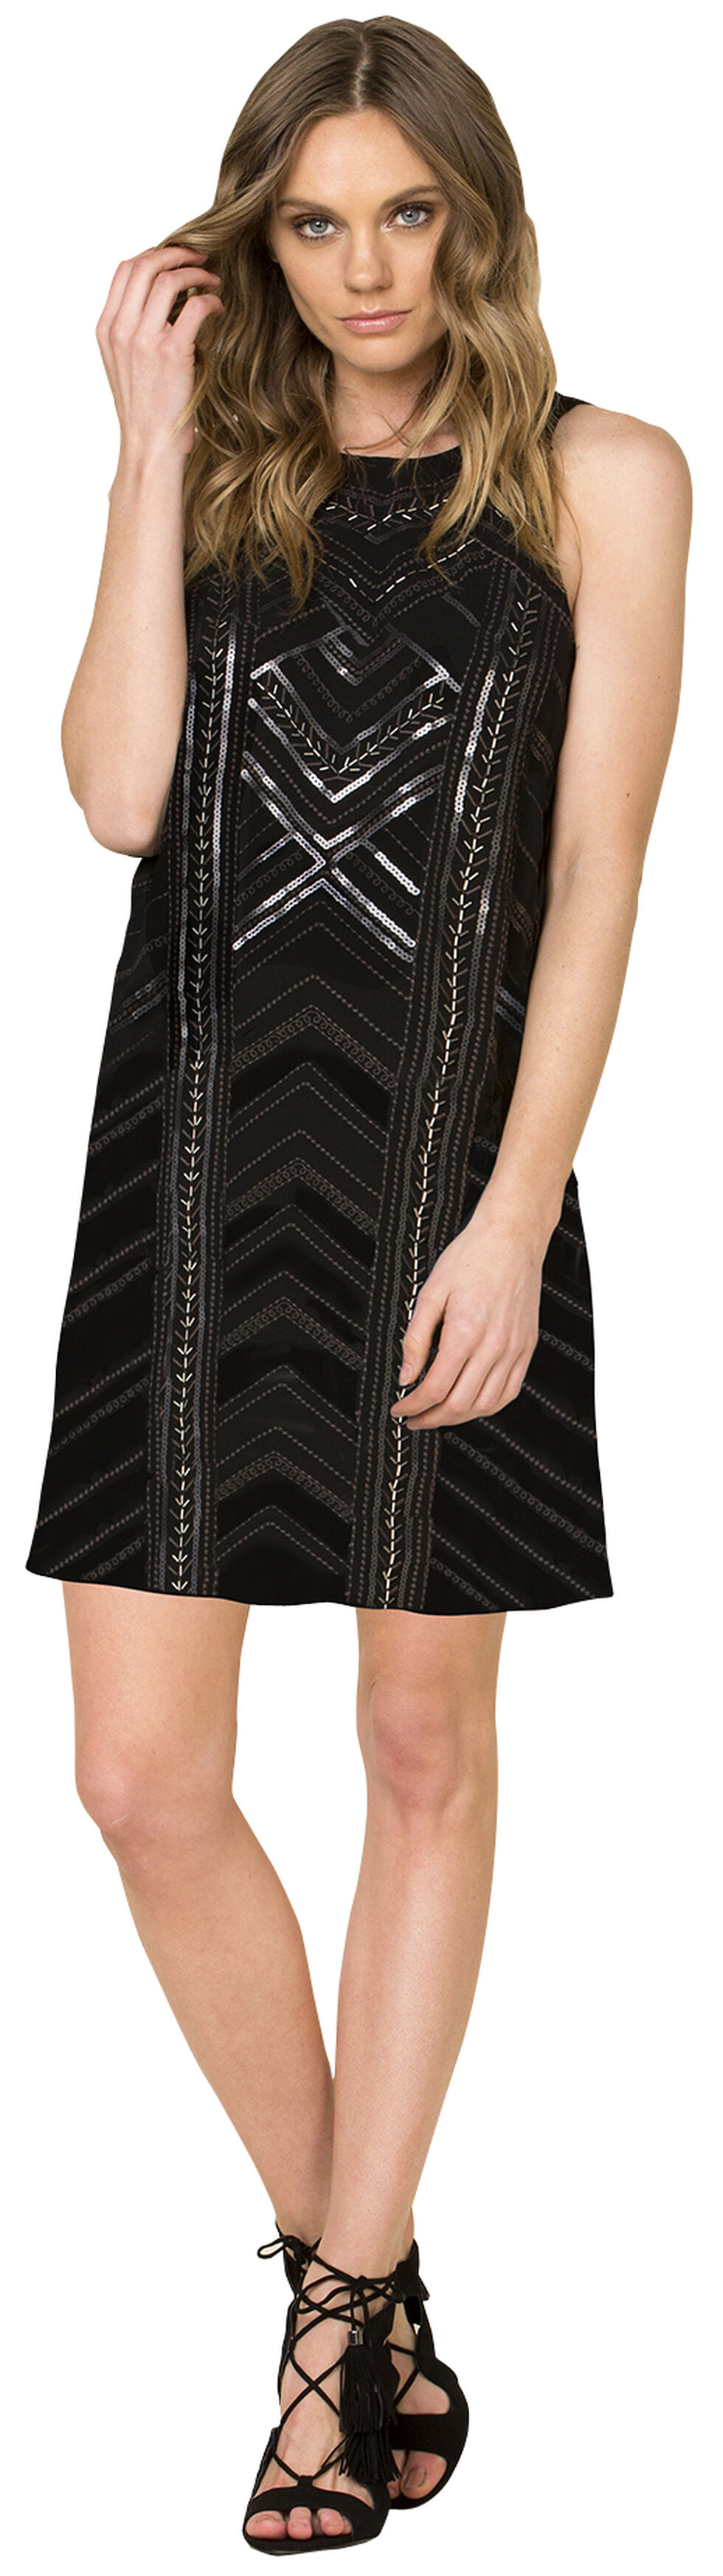 Miss Me Women's Black Sleeveless Embroidered Dress , Black, hi-res